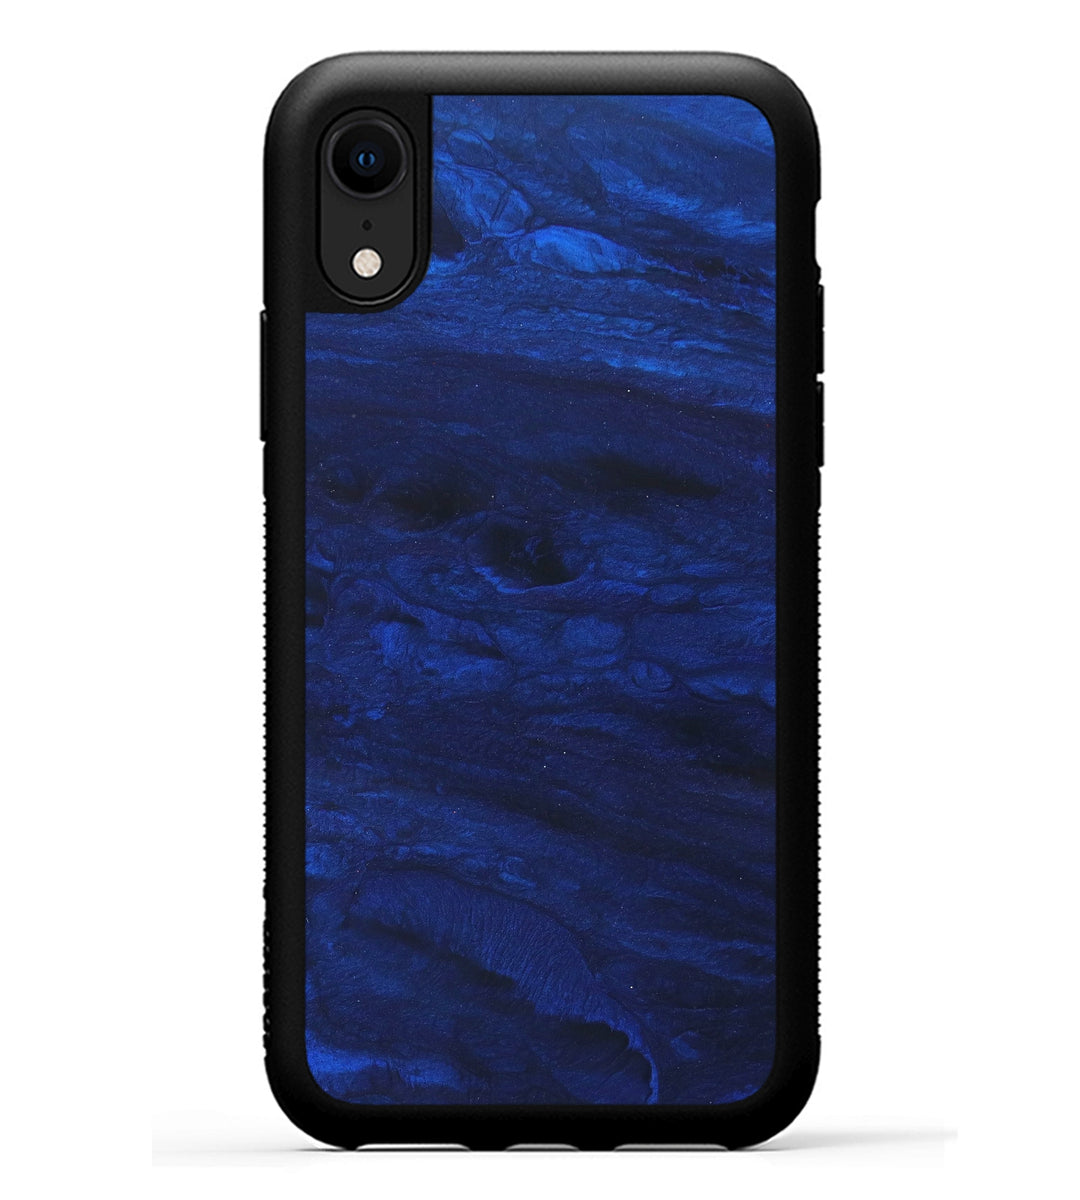 iPhone Xr ResinArt Phone Case - Maegan (Dark Blue, 347630)